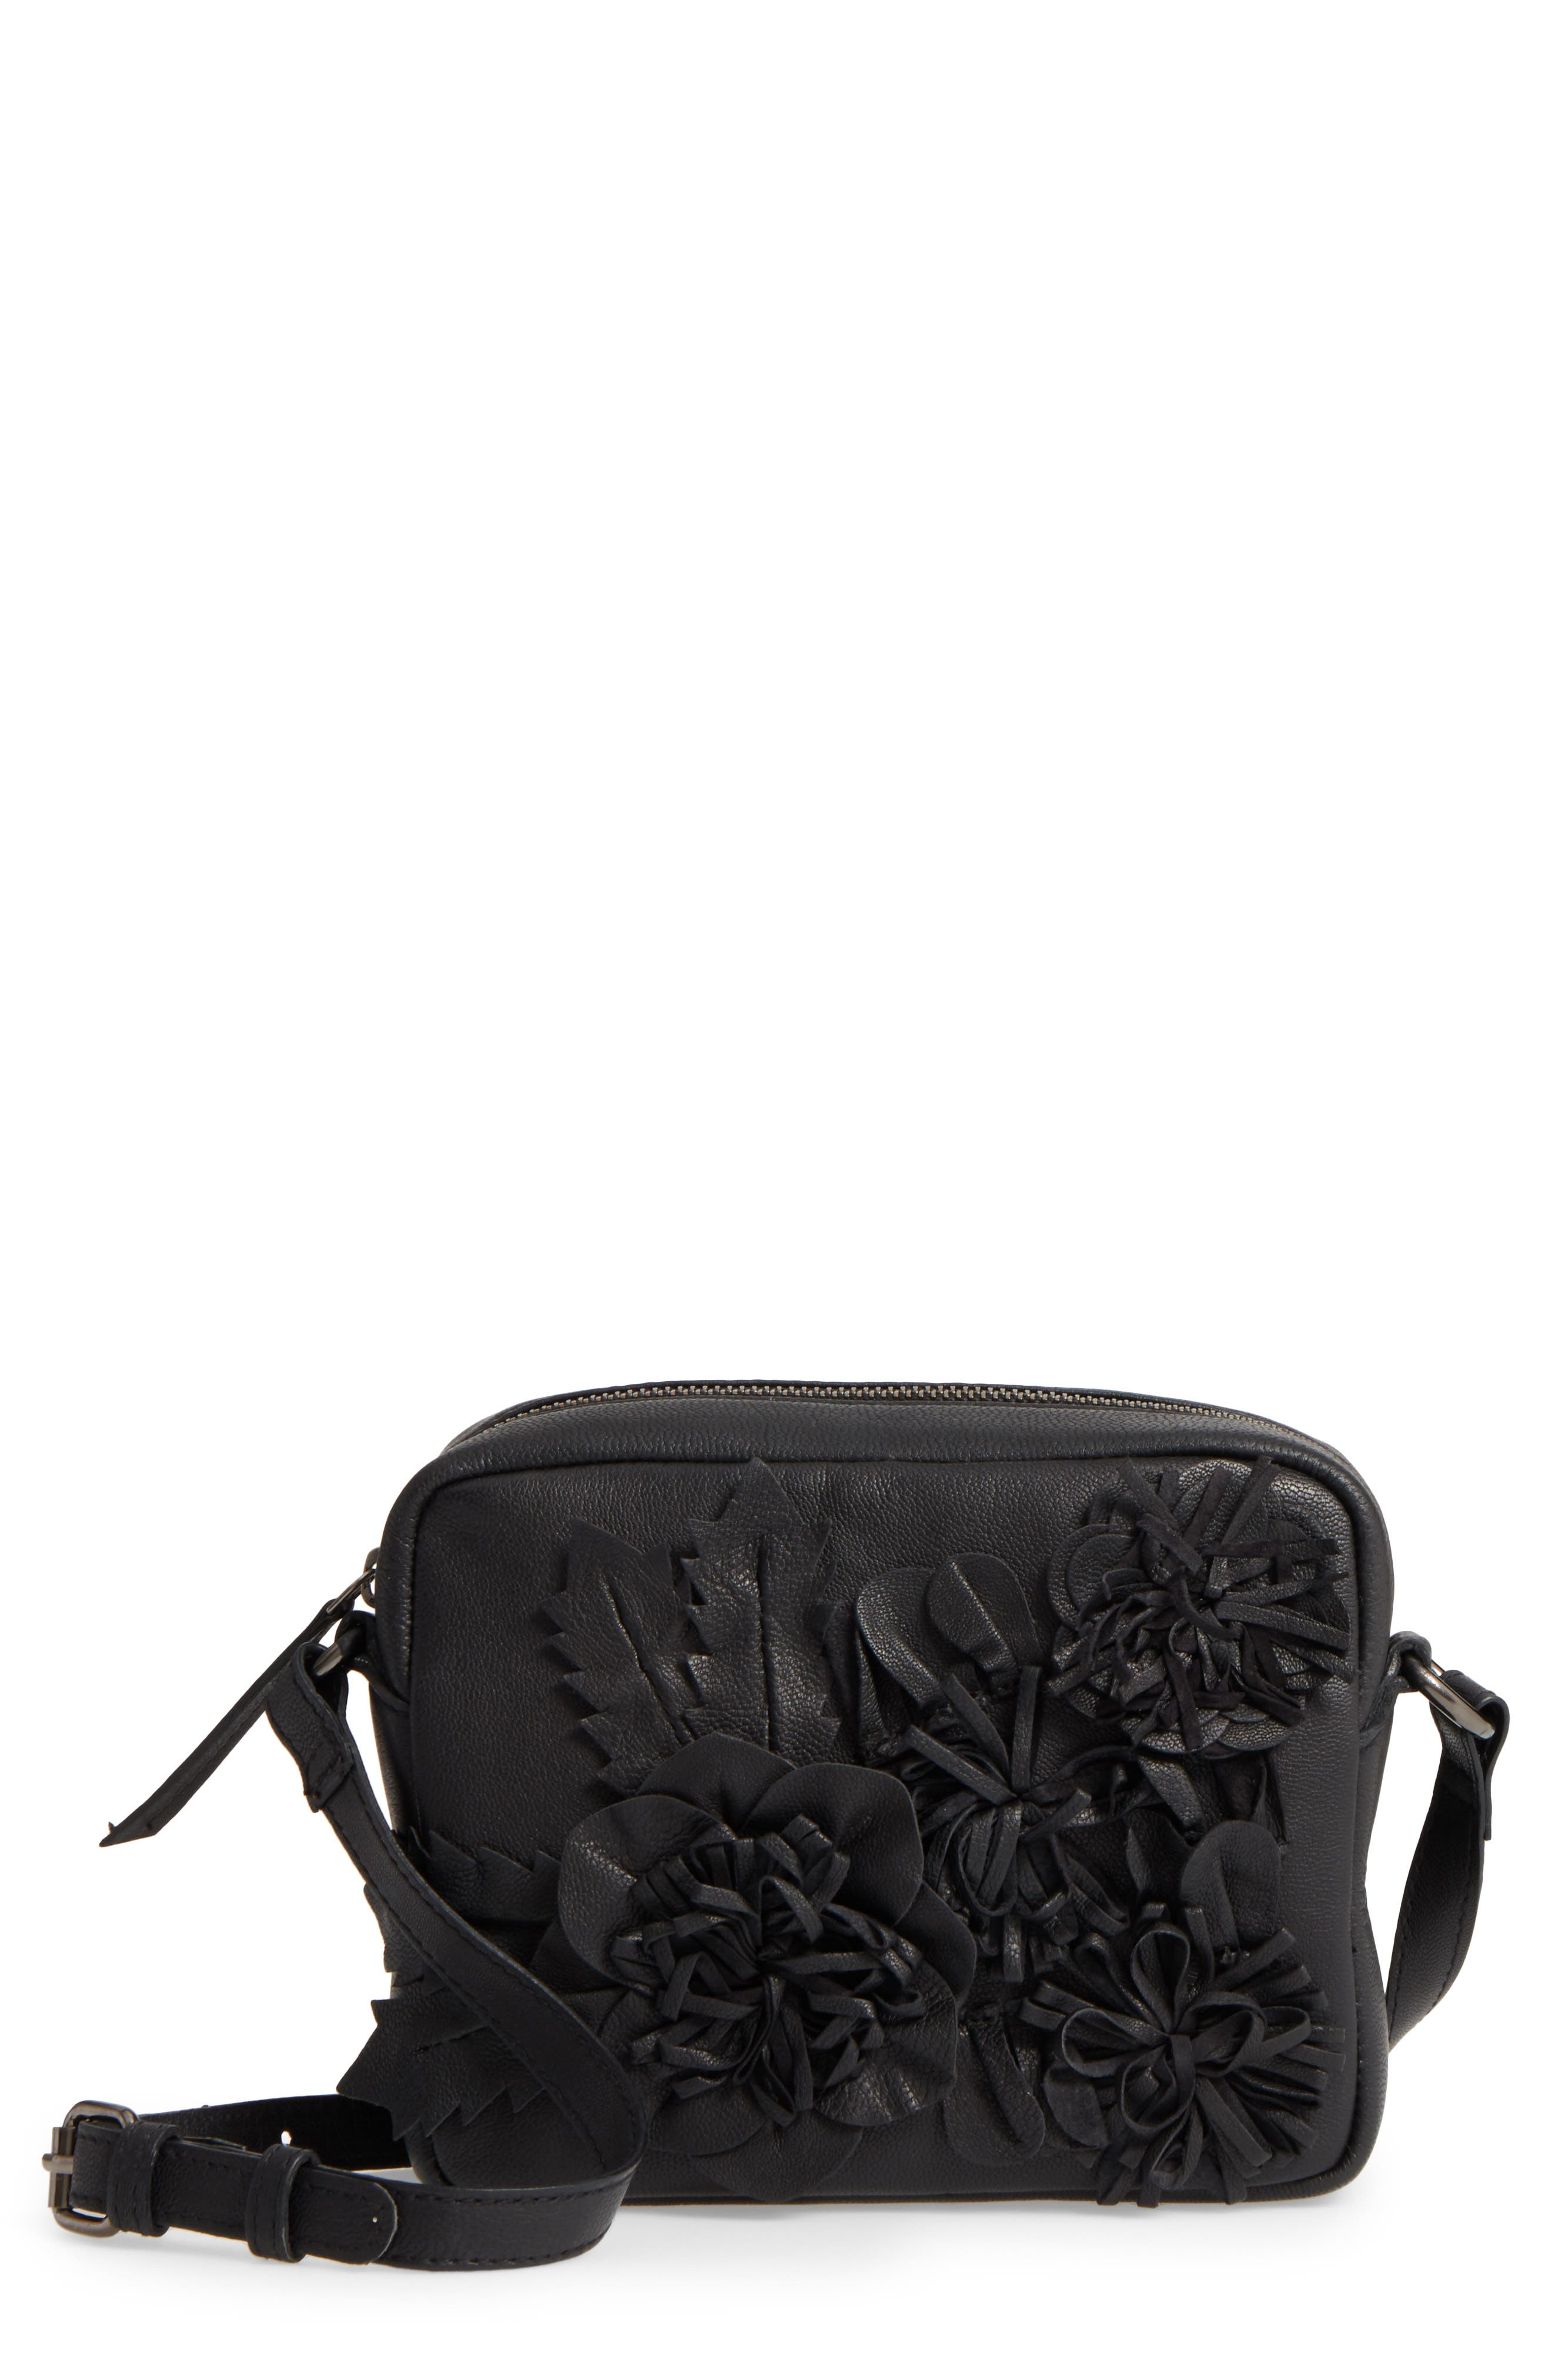 Topshop Elise Floral Leather Crossbody Bag